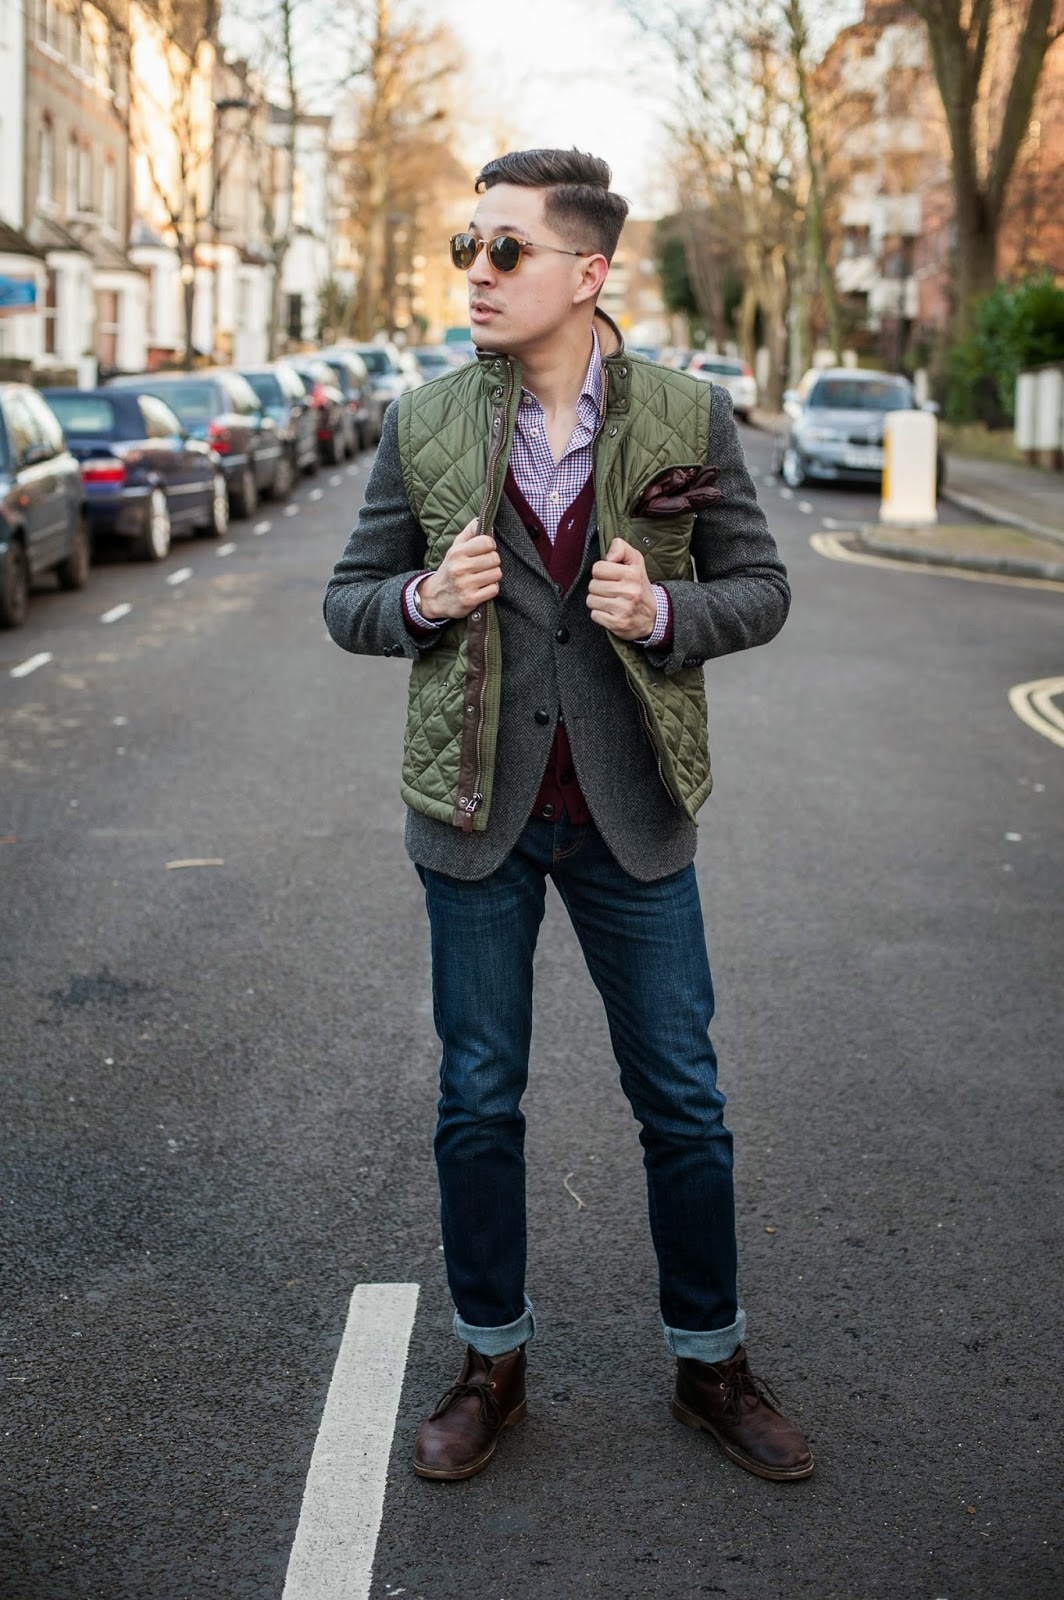 Brooks brothers vest, uniqlo blazer, uniqlo cardigan, herringbone shirt, urban outfitters jeans, clarks shoes, omega watch